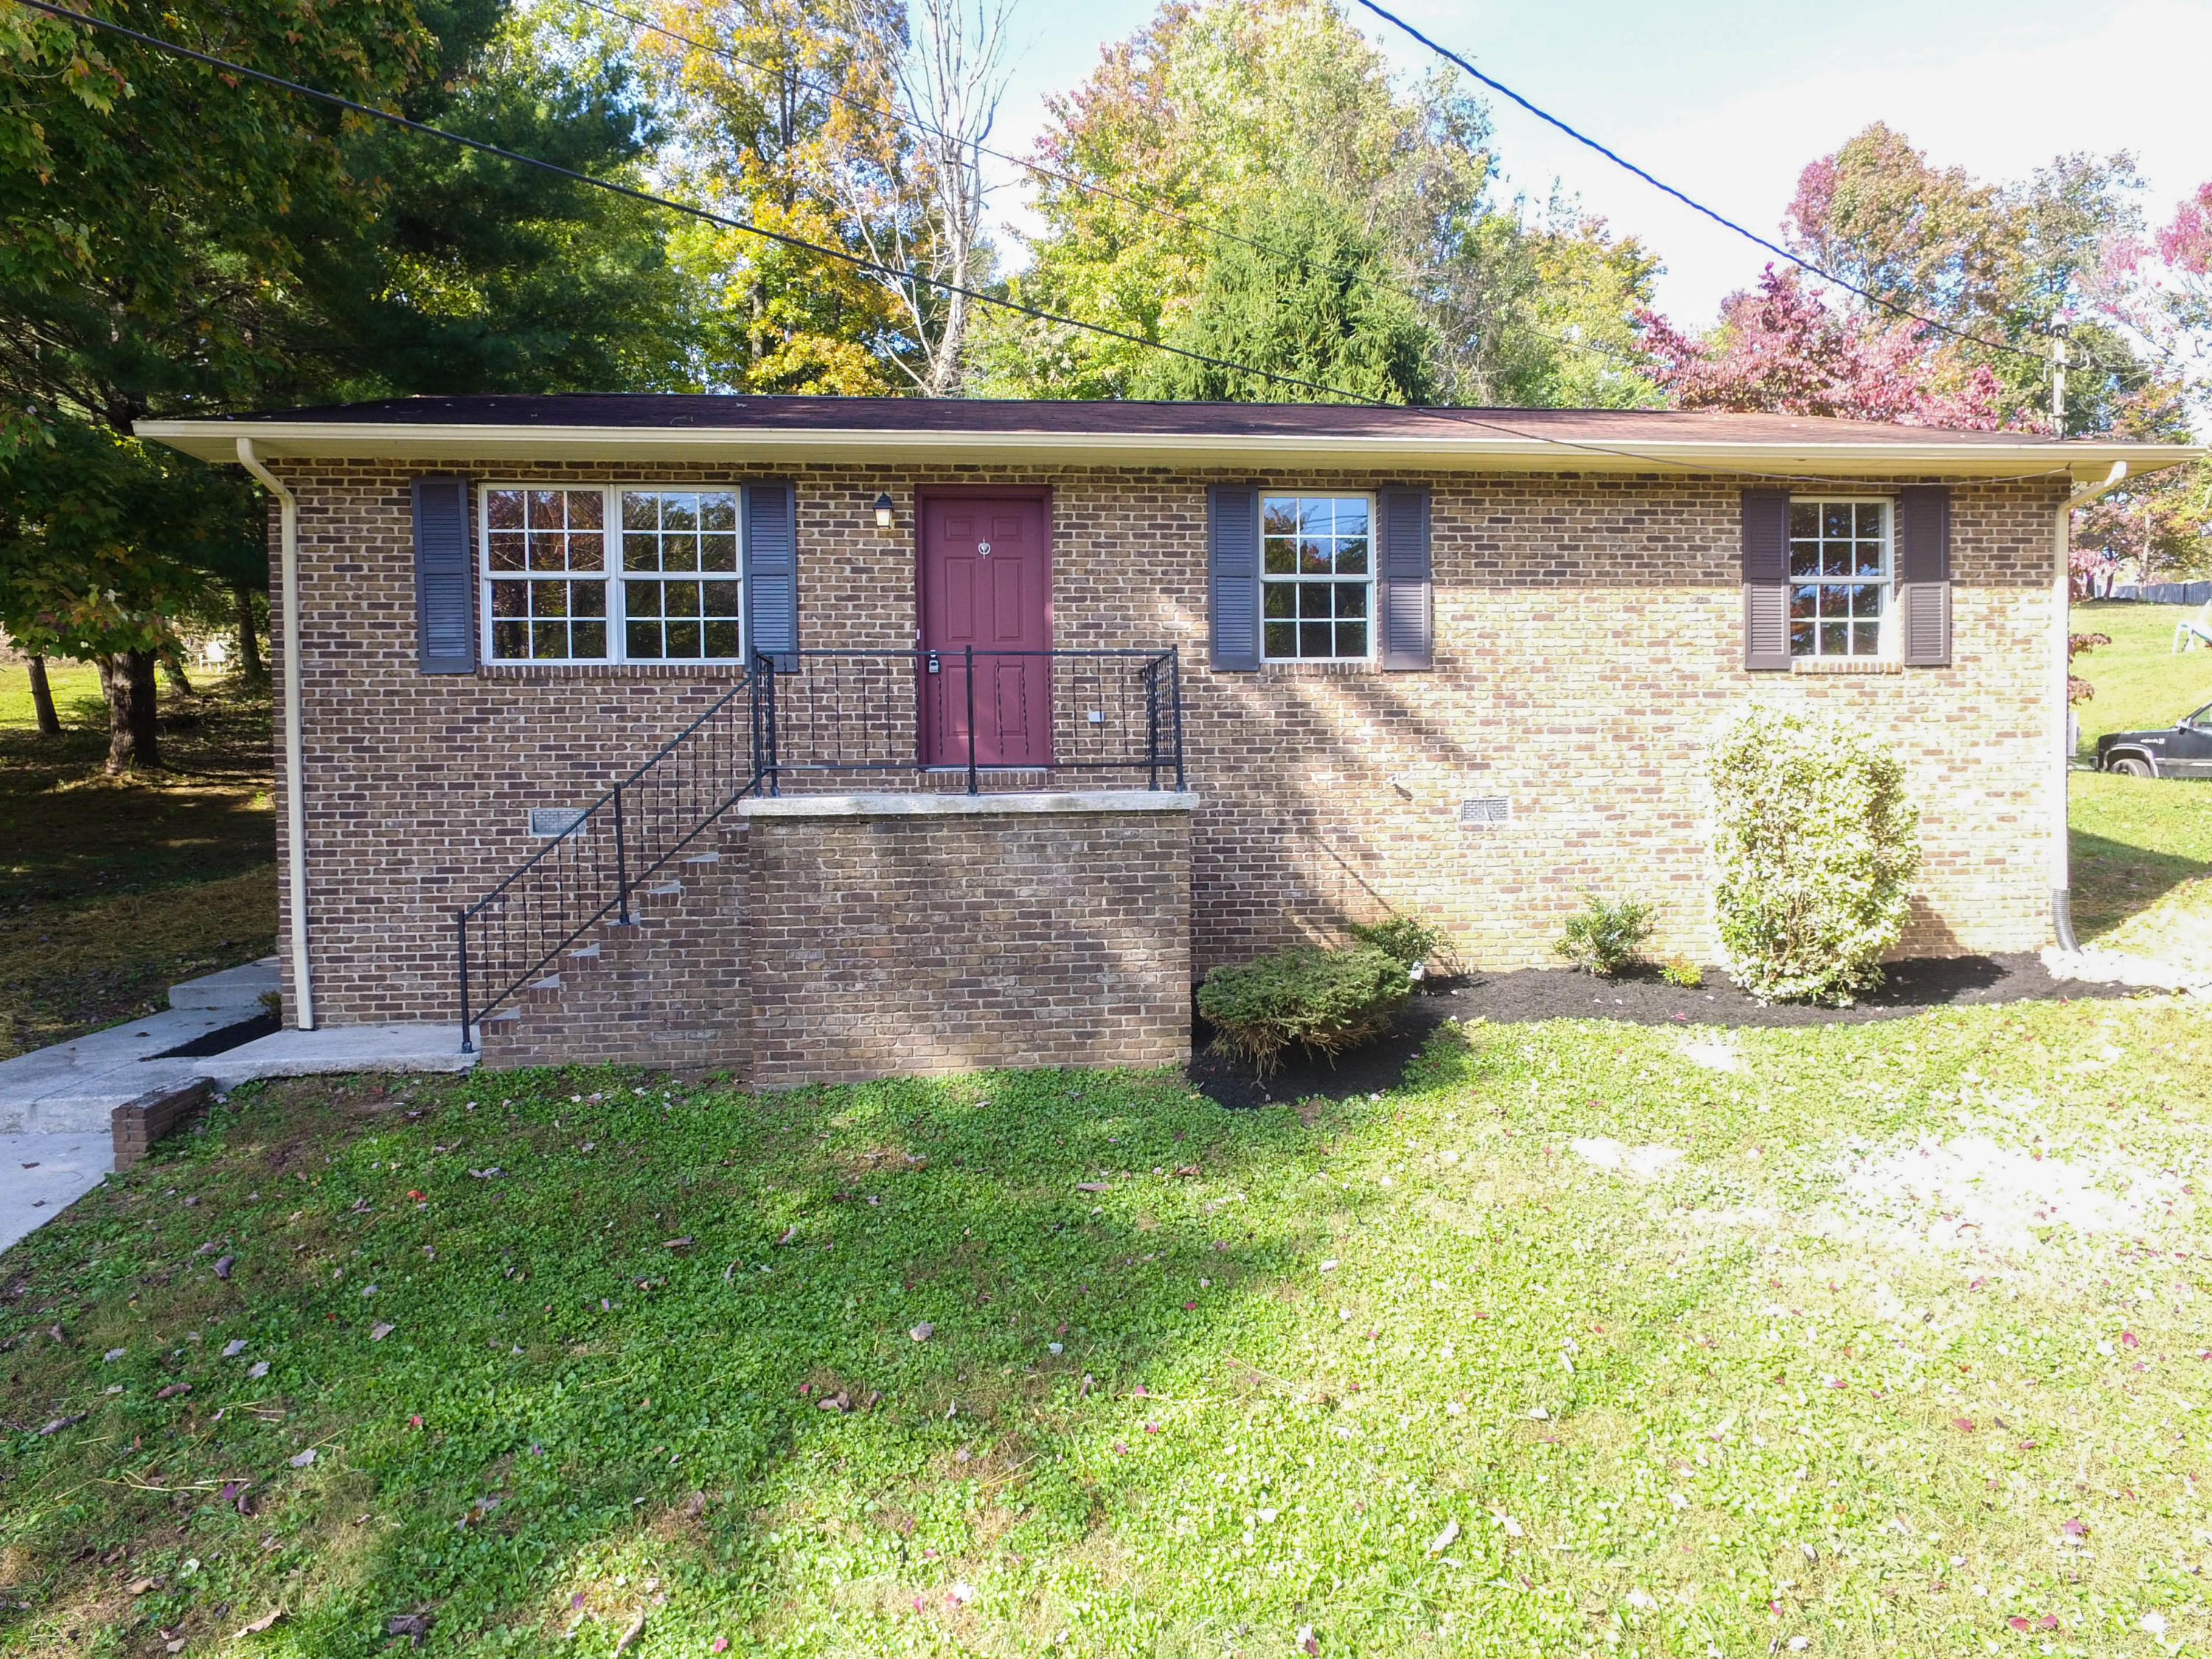 213 Gladwood Rd, Clinton, TN 37716